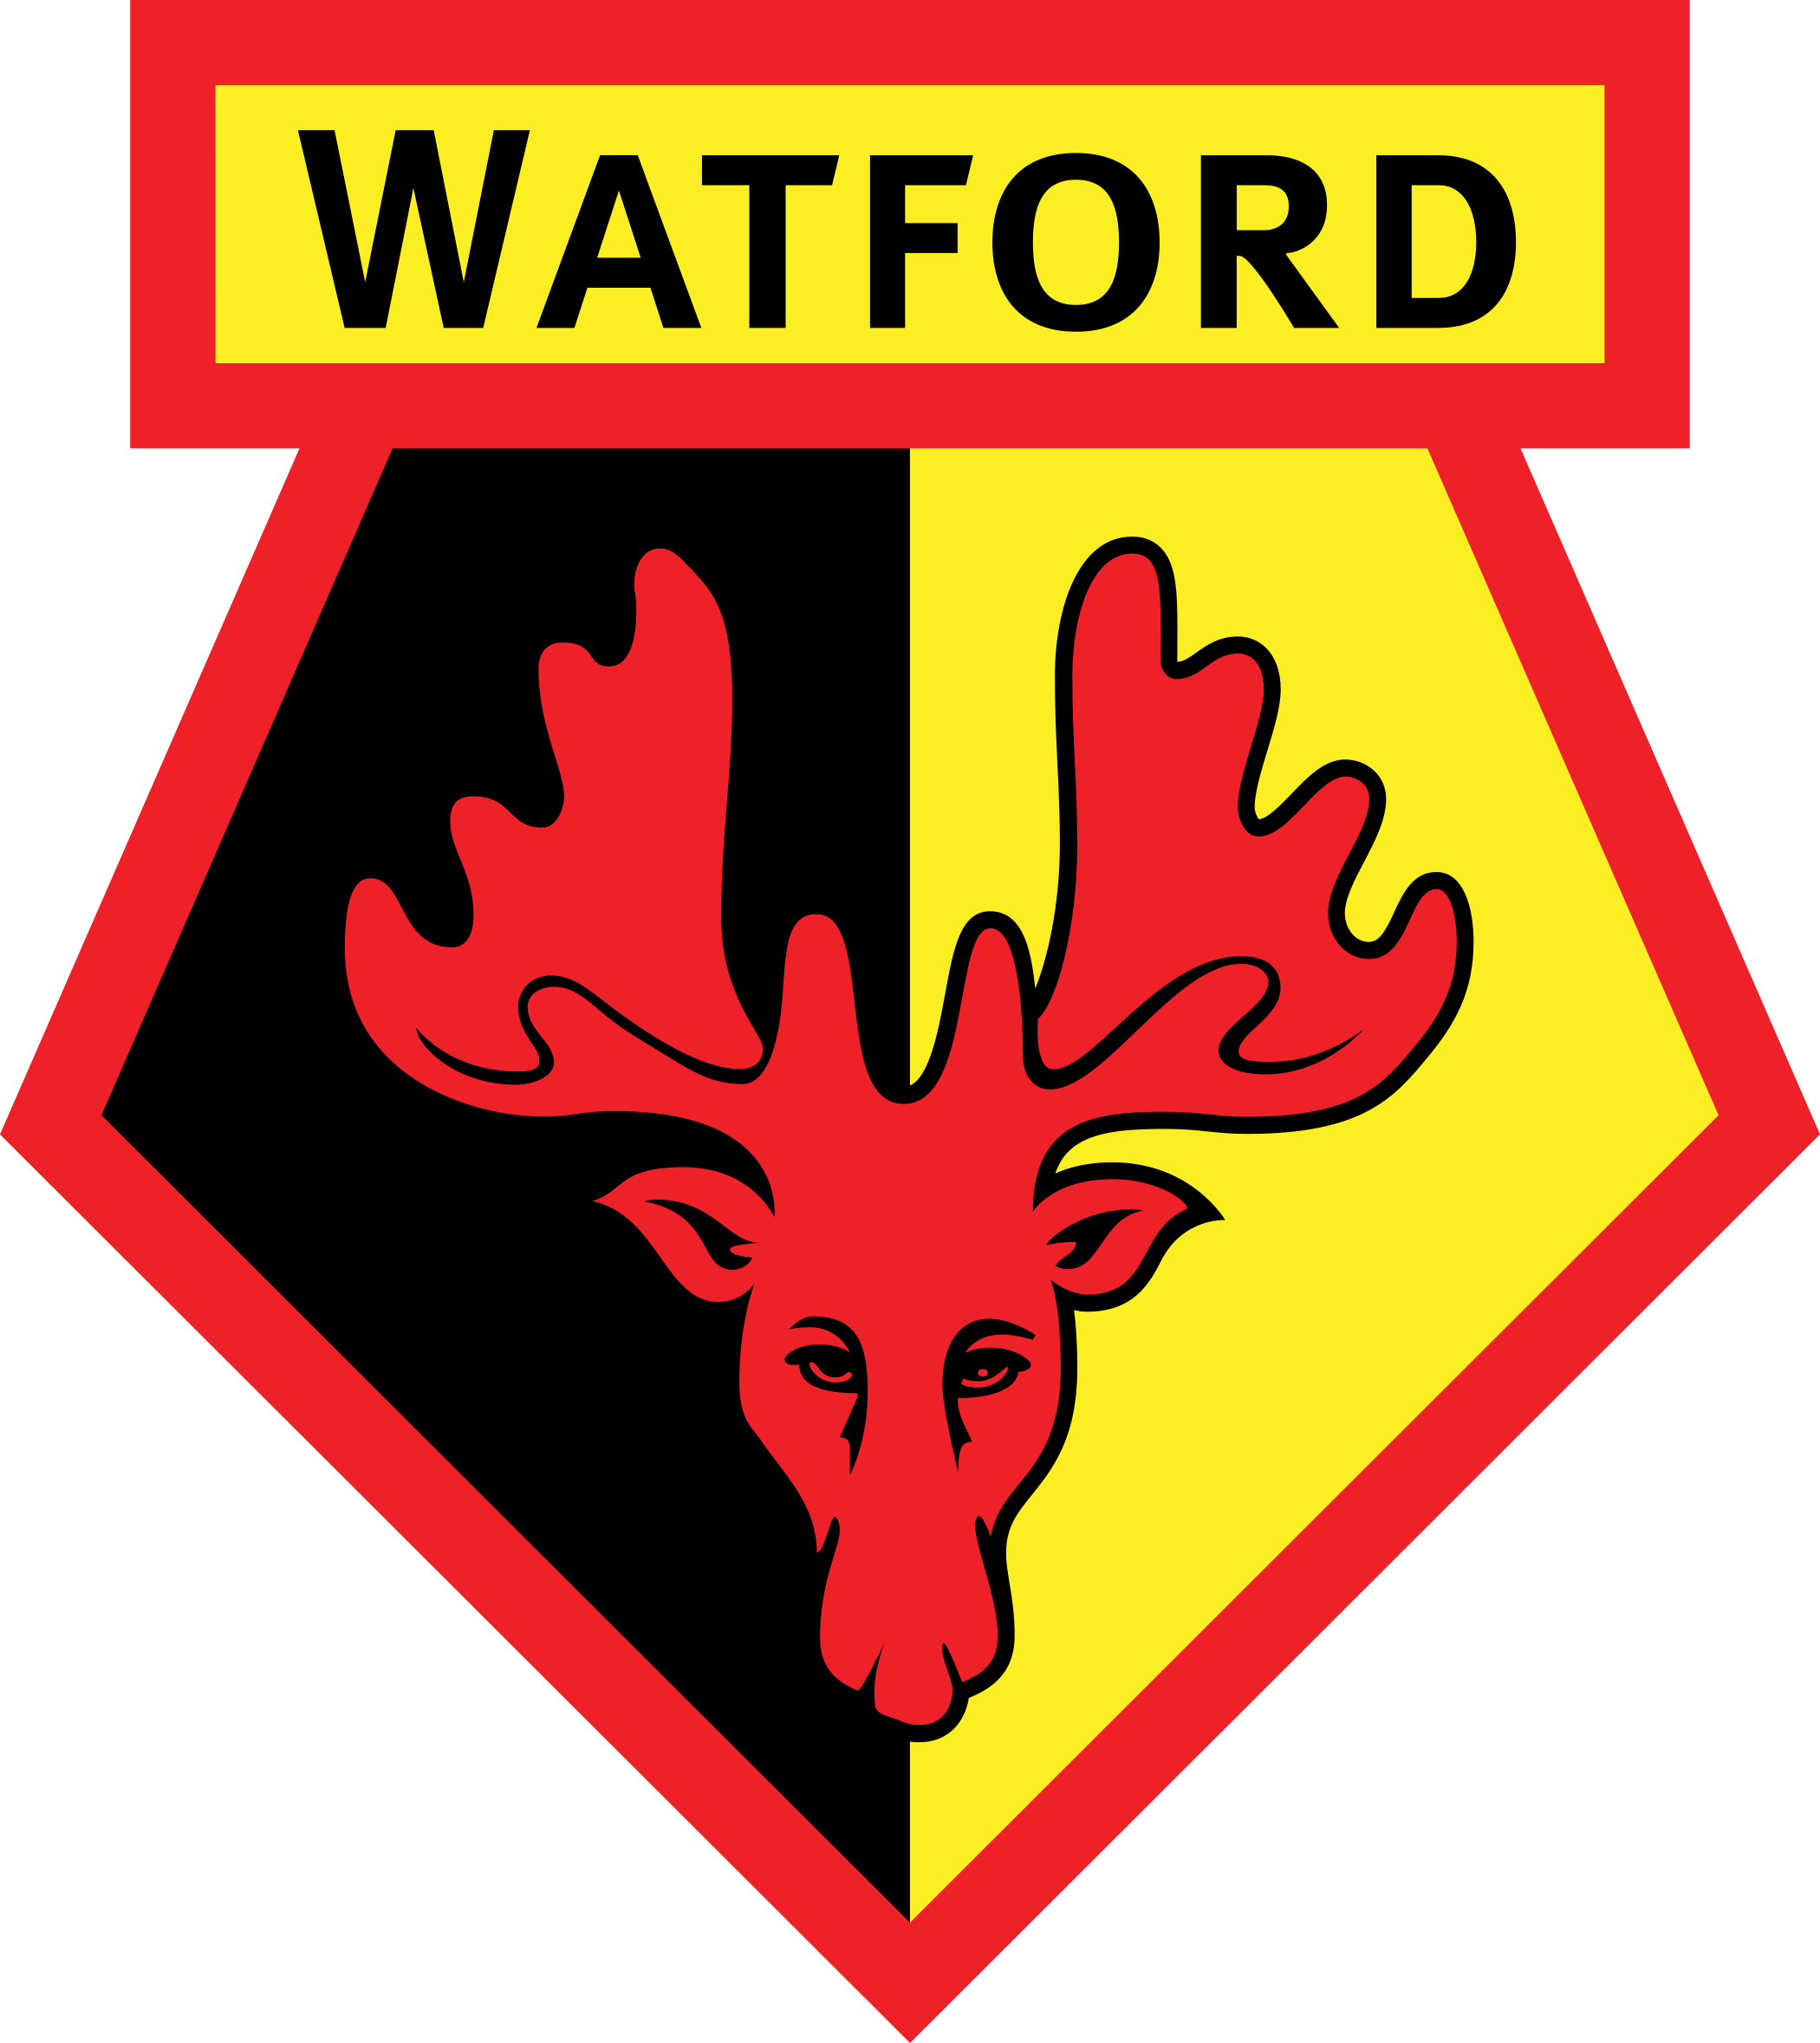 watford logo 1 - Watford Football Club Logo - Badge